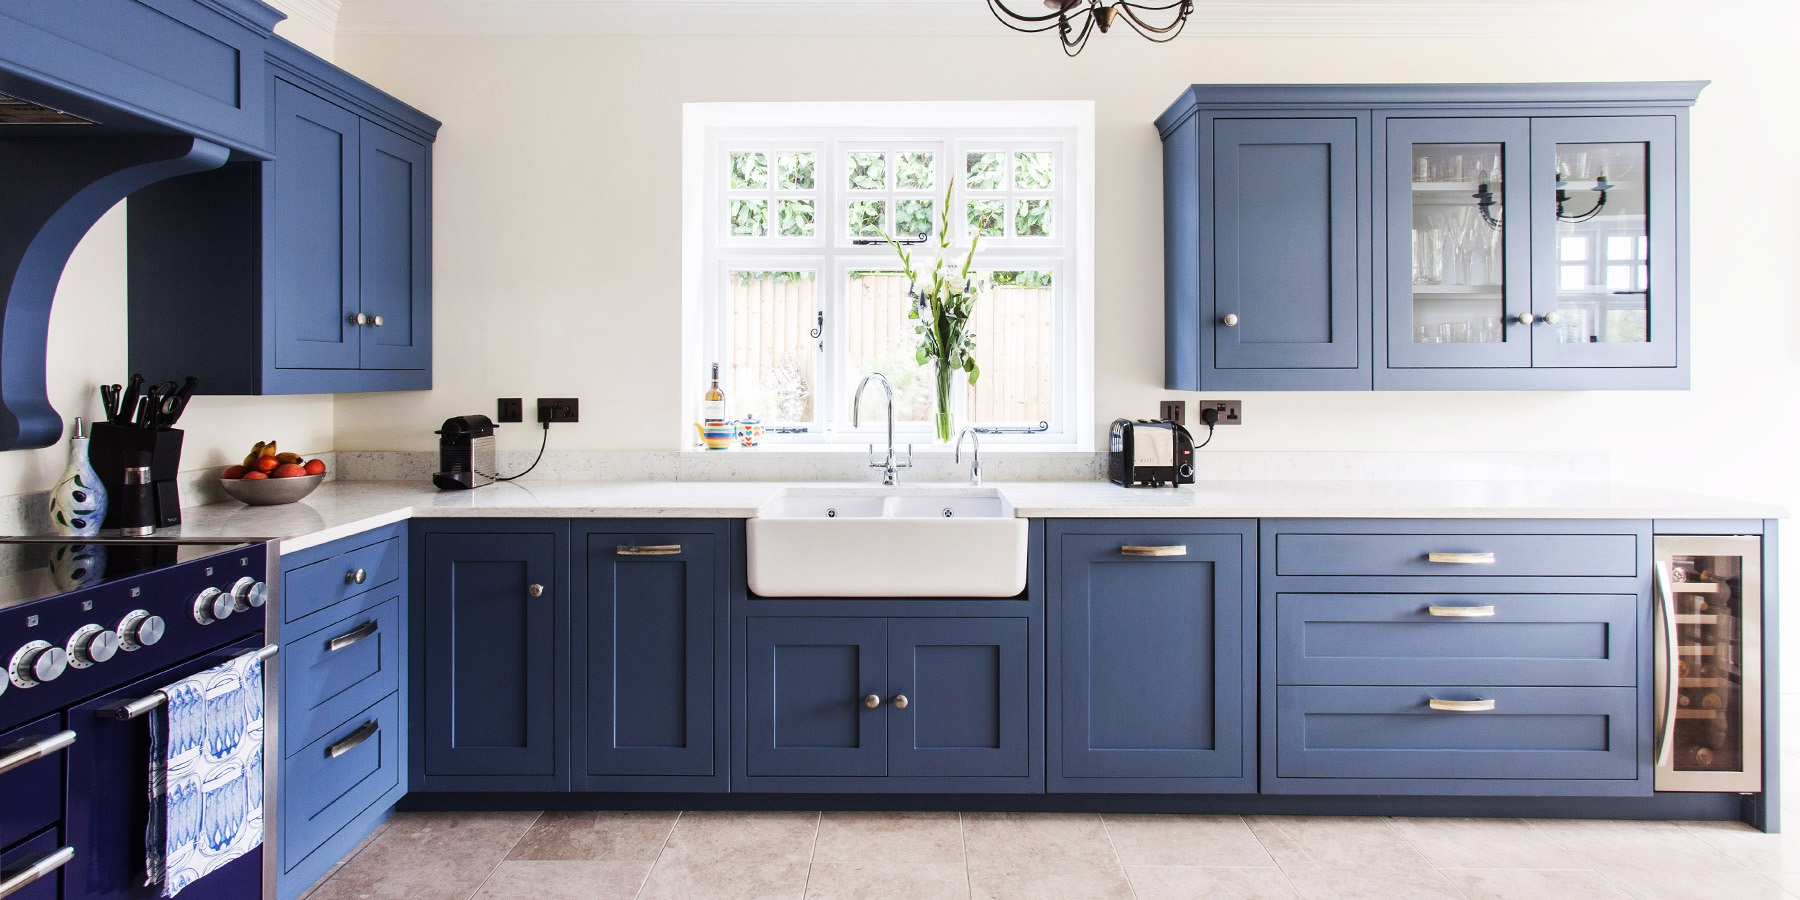 Classic Handmade Colourful Shaker Kitchen - Burlanes bespoke Hoyden kitchen in Royal Blue with white worktop and belfast sink.